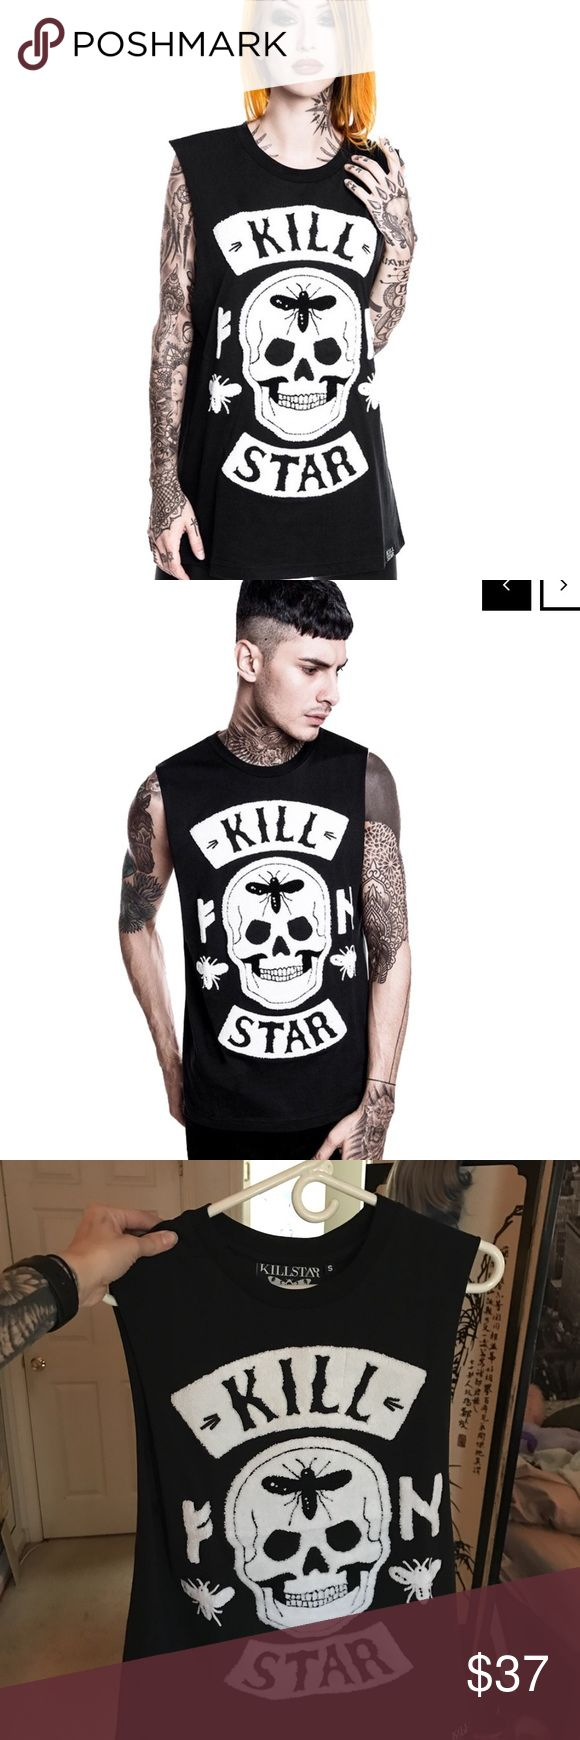 Unisex killstar highway tank top Unisex #Killstar #HighwayTankTop. Relaxed-fit tank in a durable and super smooth cotton jersey with Kill Star and scull patches on the chest. Brand new; never worn. Still has tags! Size small but #unisex Retail for $47.99. #dollskill #demonia #killstarco #nugoth #goth #punk #tattoos killstar Tops Tank Tops